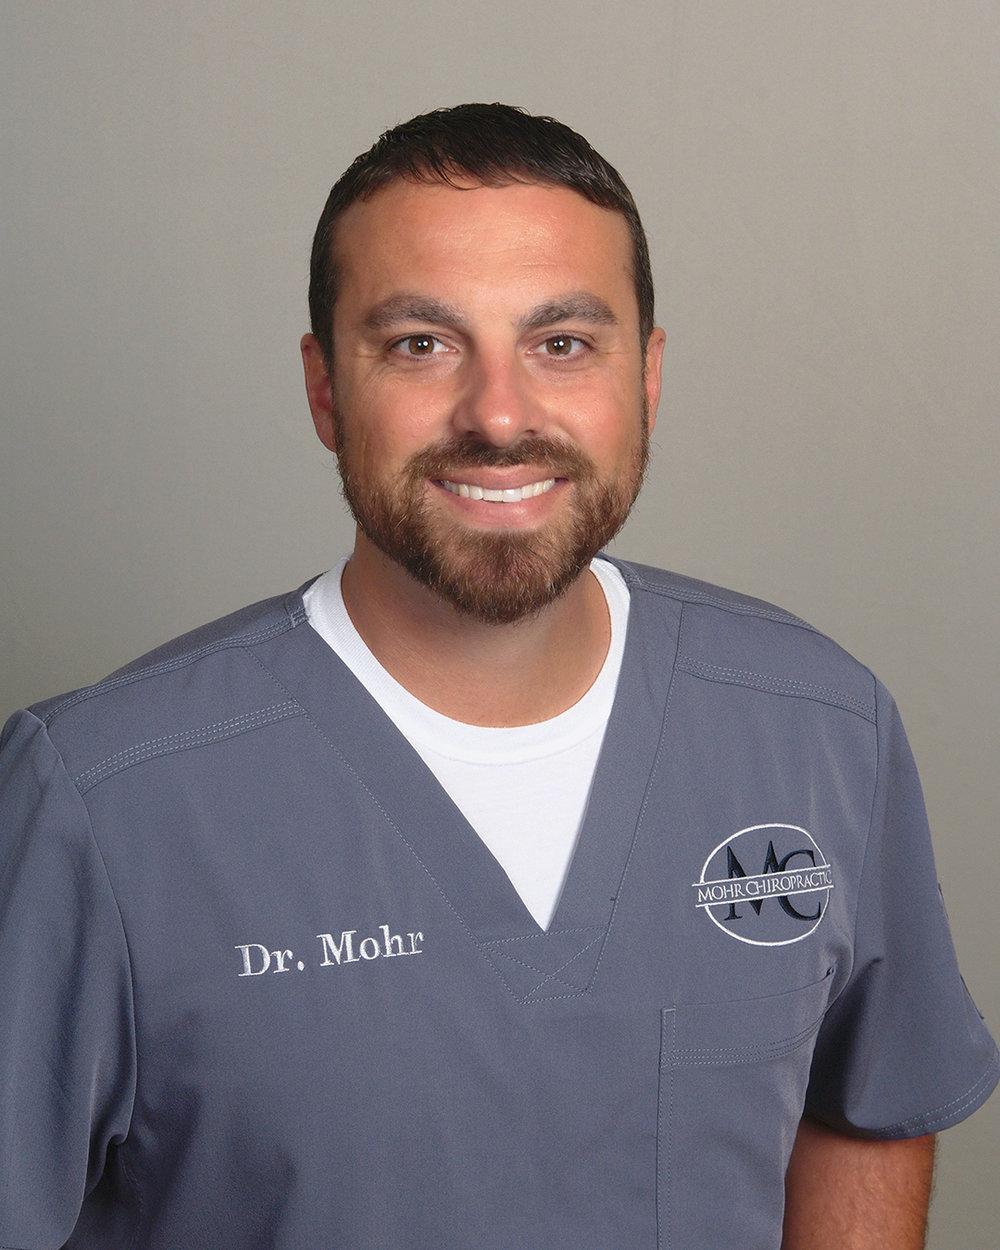 Dr. Justin Mohr - Dr. Justin Mohr is a second generation chiropractor. He has been a chiropractic patient his entire life so he knows firsthand what it is like to be the patient and the provider. Dr. Mohr grew up in Brazil, Indiana and always knew that chiropractic was the career path he wanted to take. Dr. Mohr graduated from Northview High School and then attended Indiana State University for his pre-chiropractic coursework and also received a bachelor's degree in psychology. Upon graduation, Dr. Mohr attended Logan College of Chiropractic where he was able to earn a second bachelor's degree in life science in route to completing the rigorous coursework and training to becoming a Doctor of Chiropractic. Dr. Mohr graduated from Logan College of Chiropractic in December of 2007.Dr. Mohr is board certified in chiropractic and physiotherapy. He is a member of the Avon Chamber of Commerce, the Indiana State Chiropractic Association, the Logan College Alumni Association, Integrity Doctors, and Harvest Bible Chapel in Avon. Dr. Mohr enjoys spending time with his family, being outdoors, and traveling.Dr. Justin specializes in helping his patients treat their headaches and low back pain through the use of Chiropractic care as well as home management.